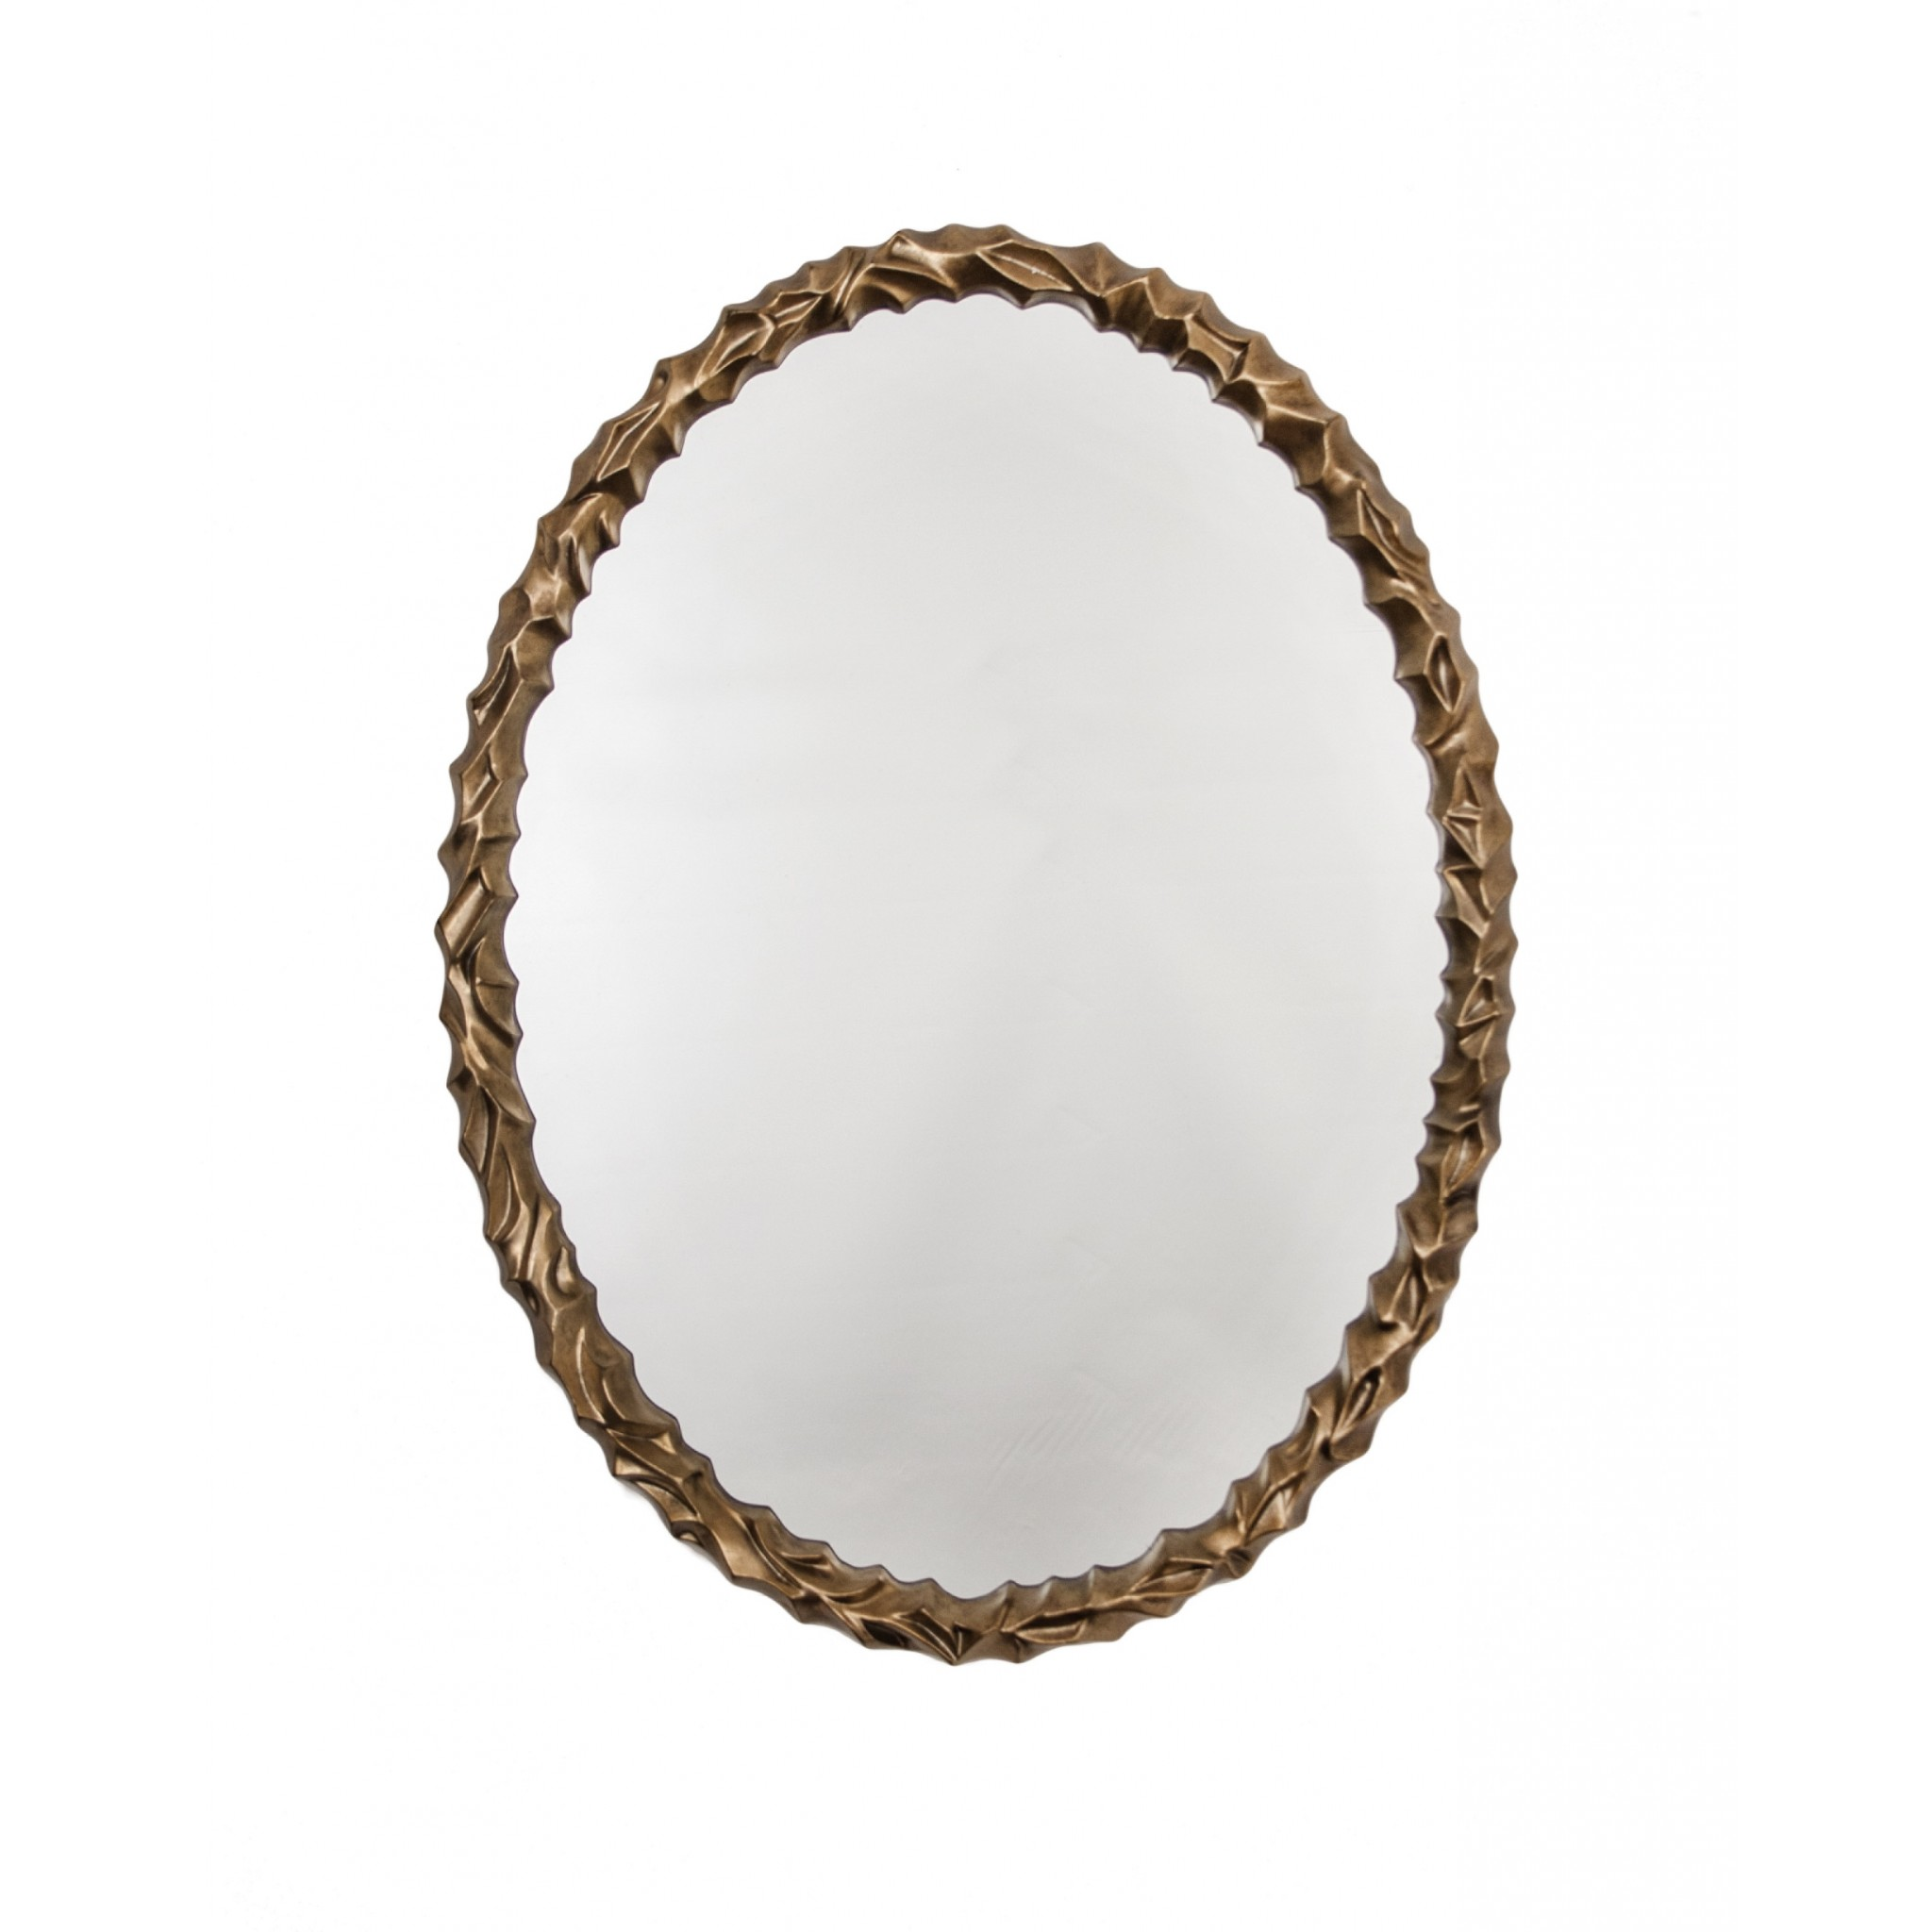 RV Astley Angelic Oval Distressed Light Gold Leaf Mirror